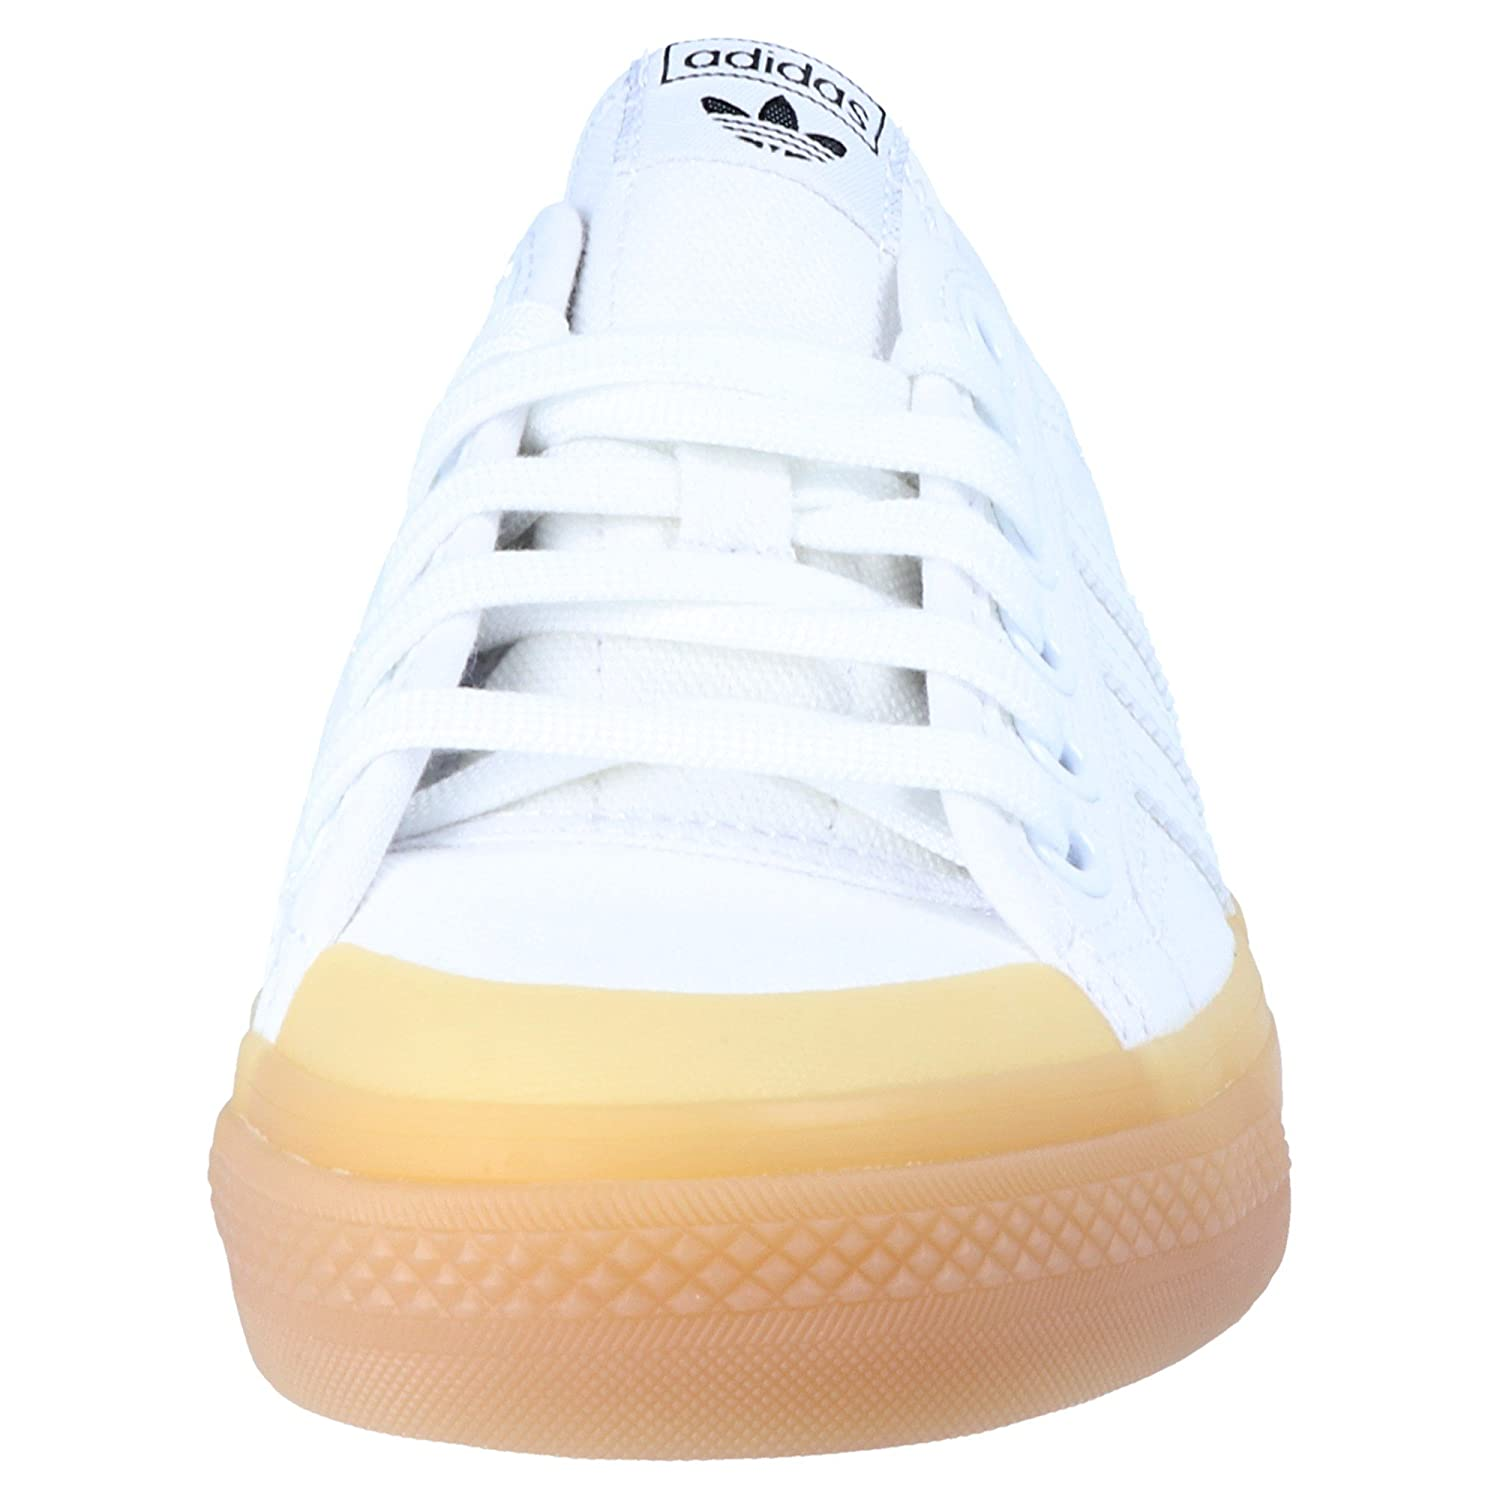 adidas Originals Nizza W CQ2533 Damen Sneaker Weiß: Amazon